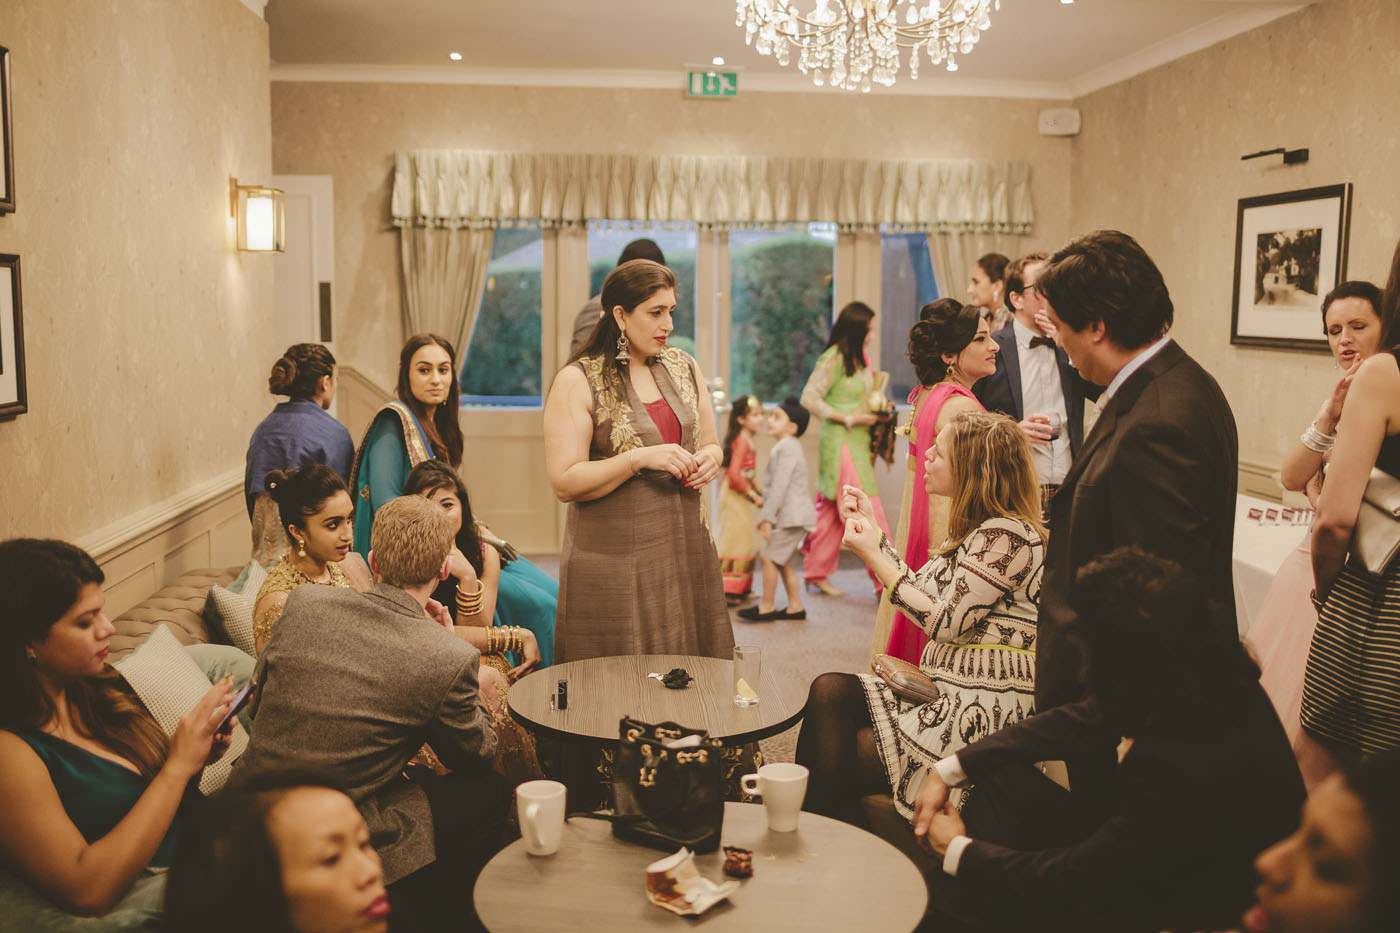 edmundjasveen burford bridge hotel wedding photographer 0076